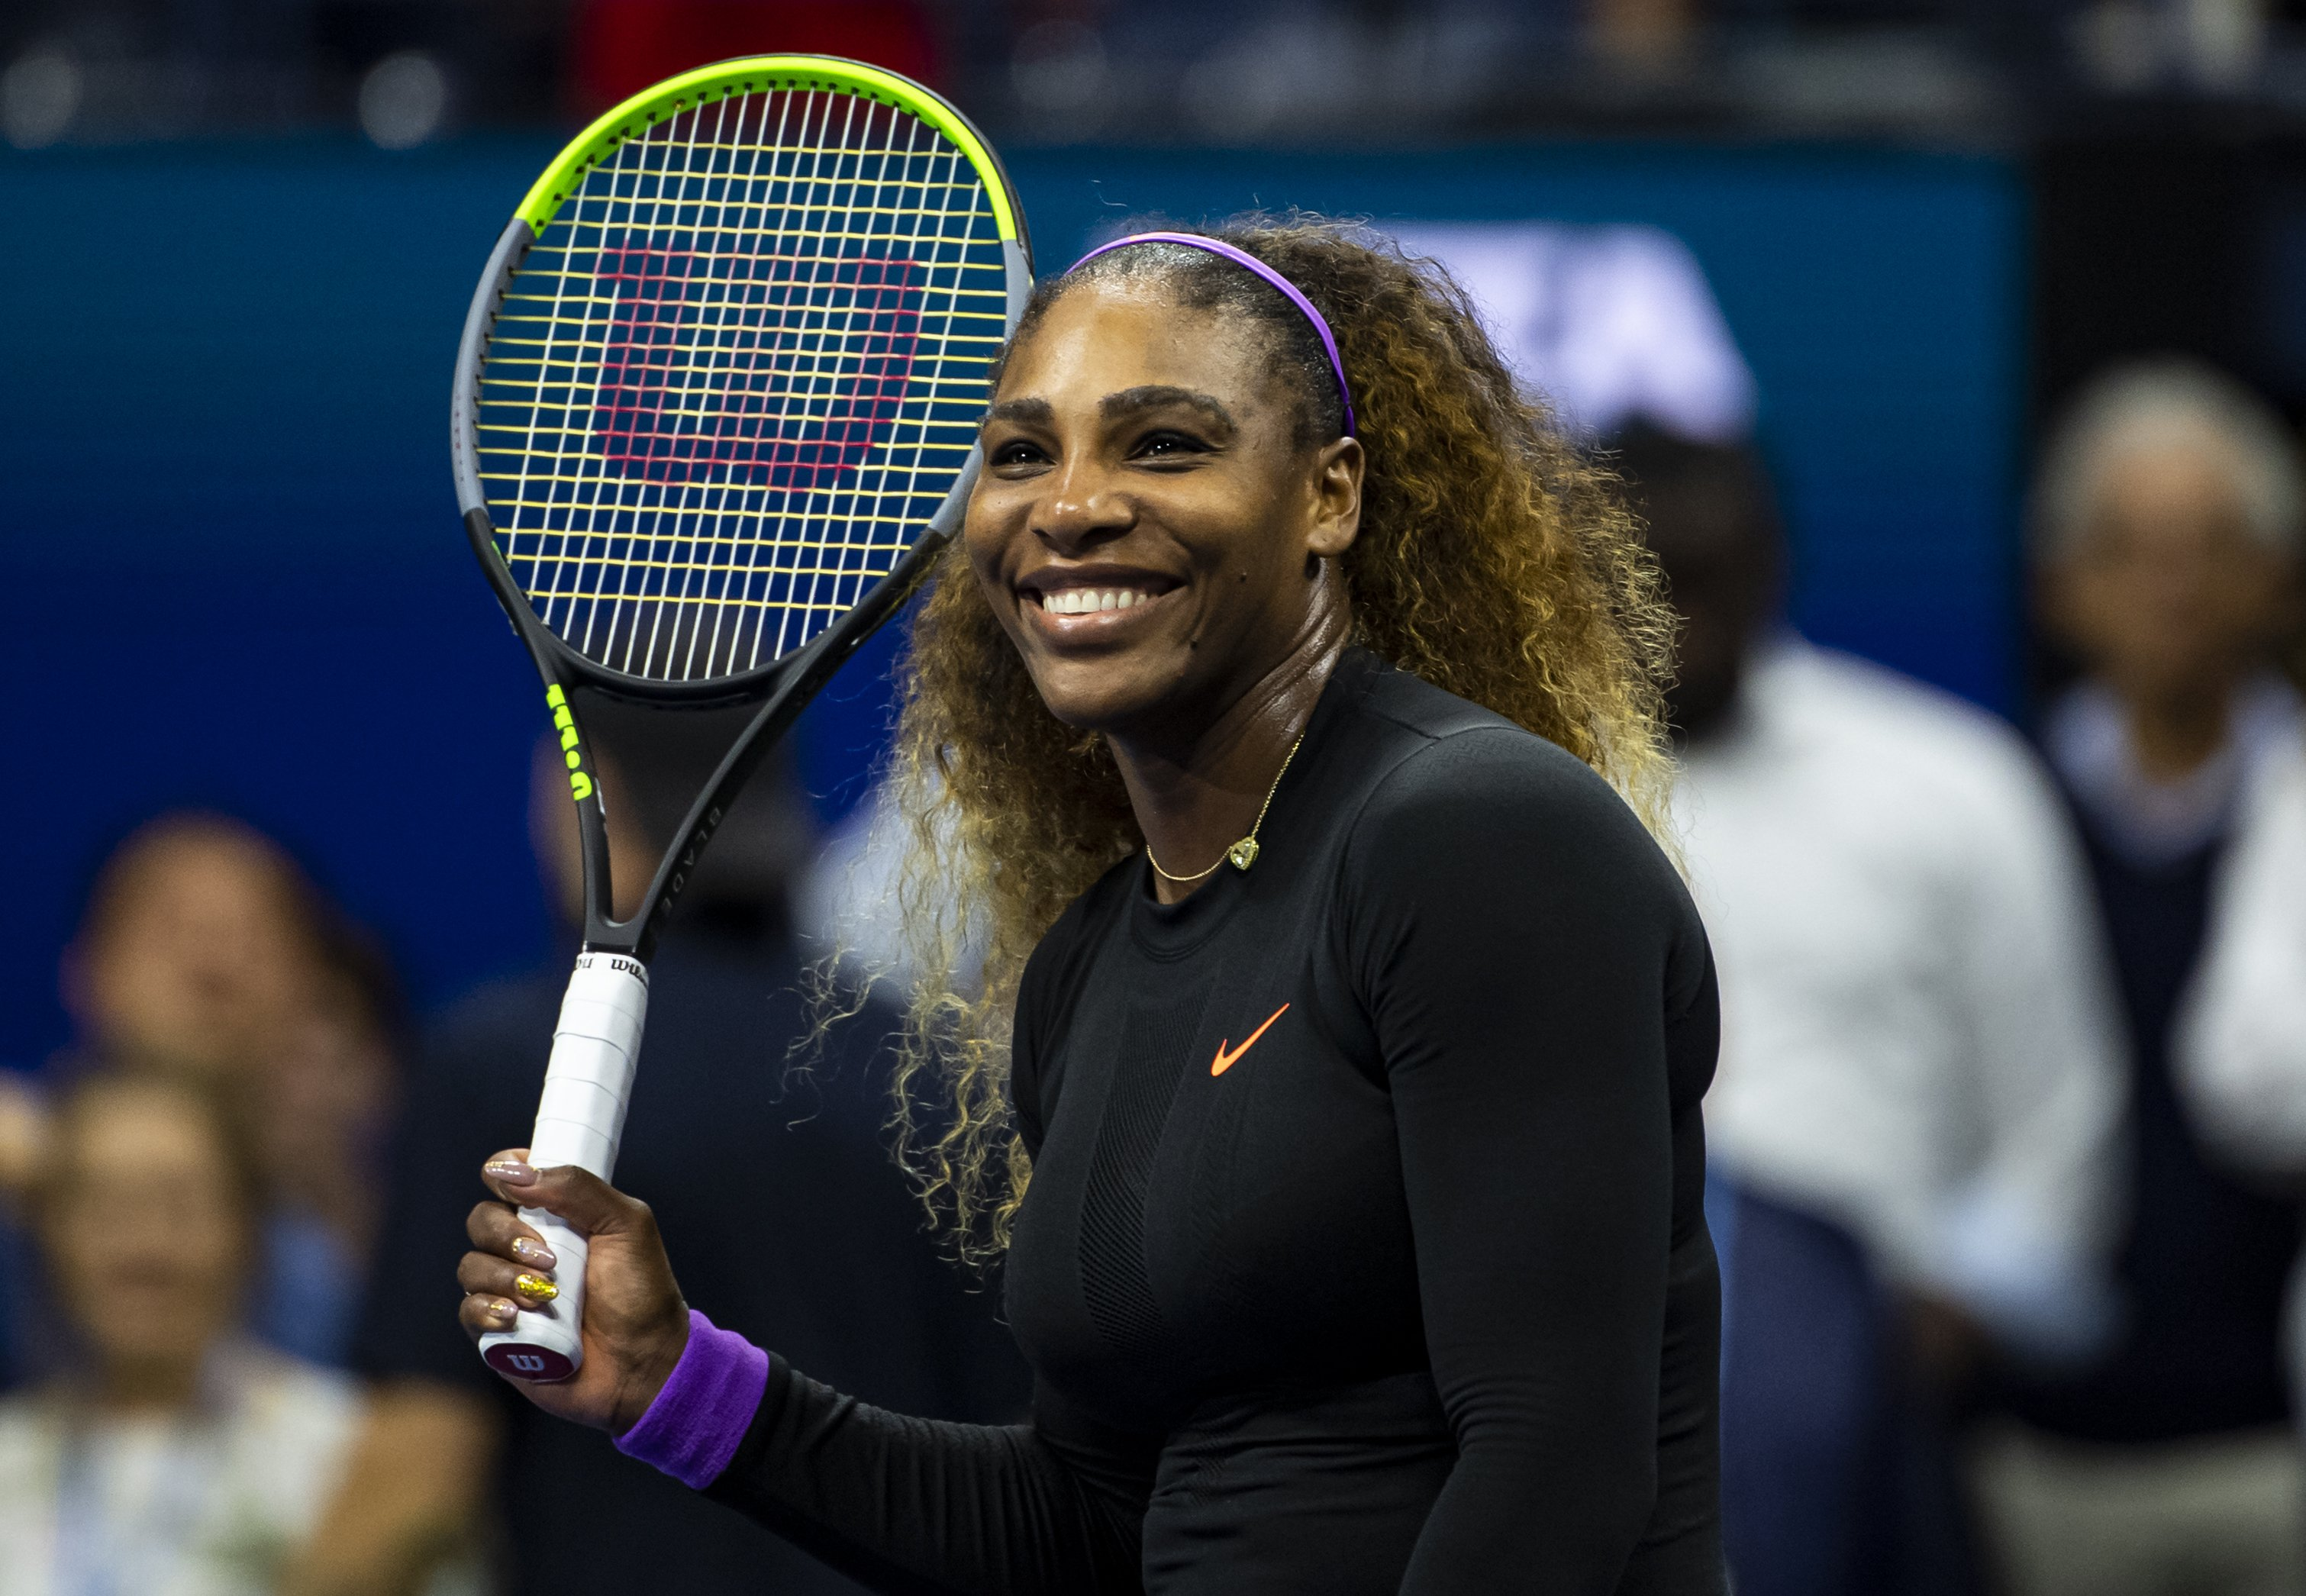 Serena Williams at Arthur Ashe Stadium at the USTA Billie Jean King National Tennis Center on September 05, 2019 in New York City.| Source: Getty Images